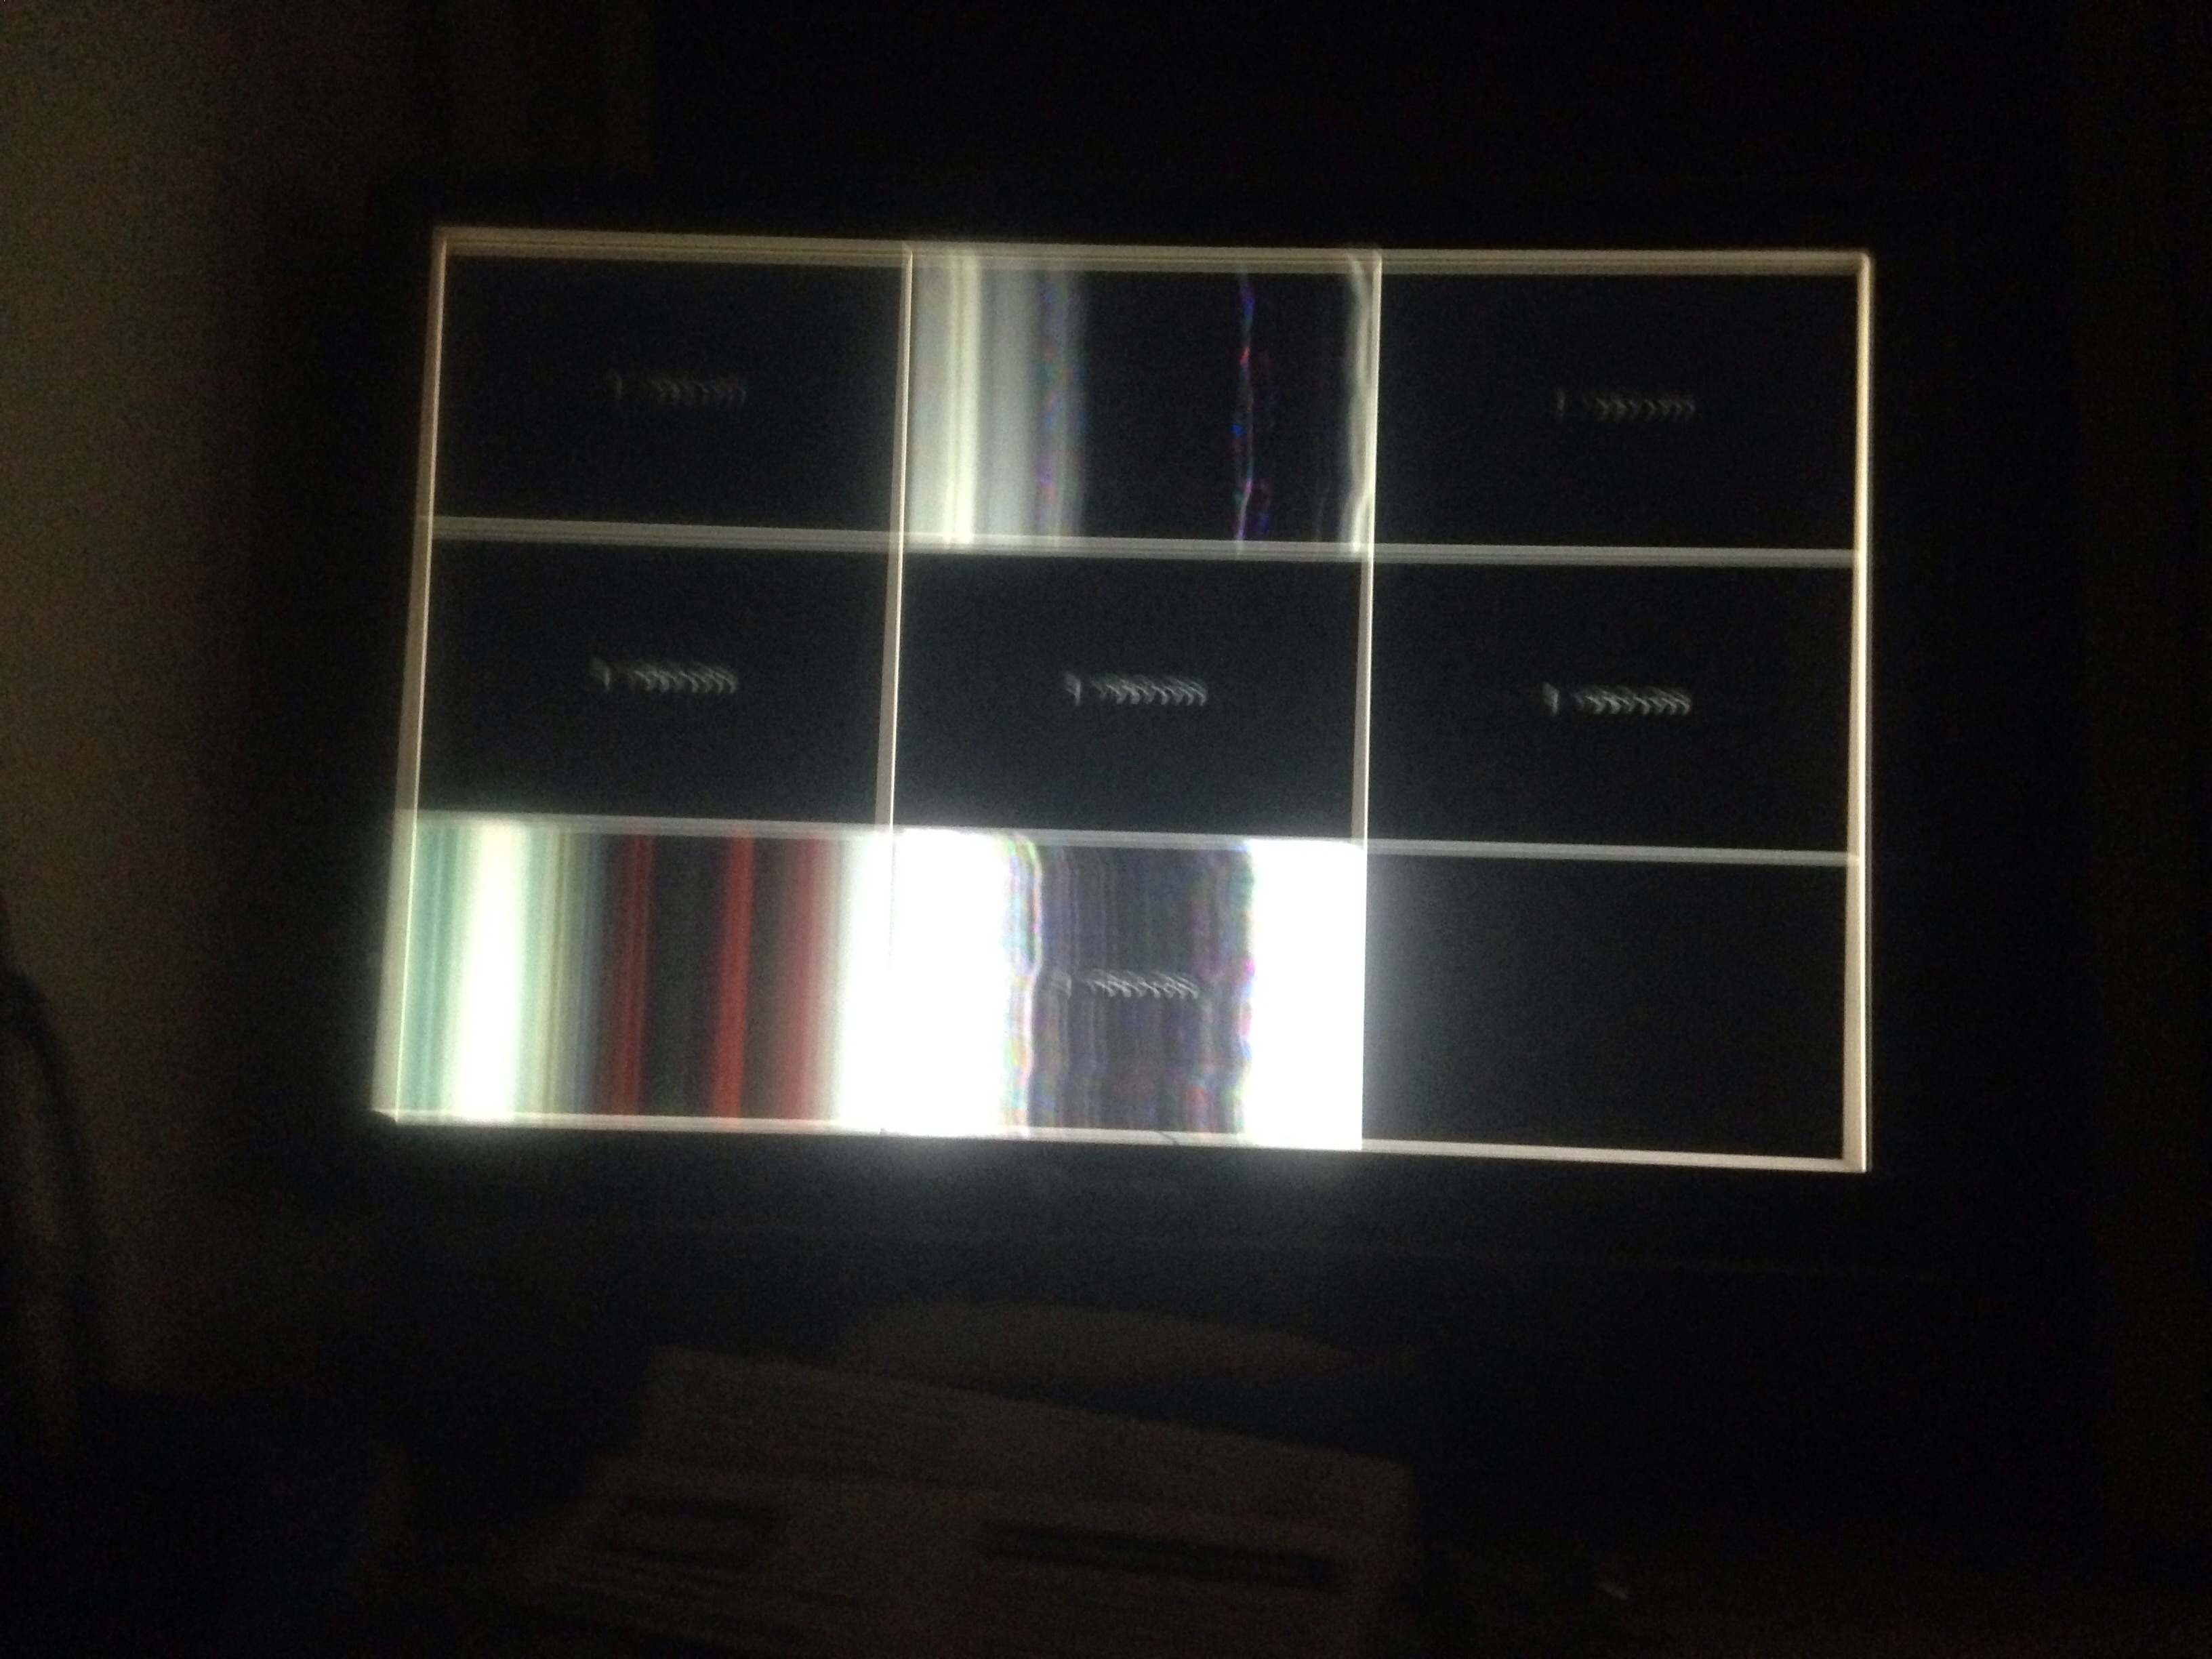 lost all cameras updateing firmware for reolink camera